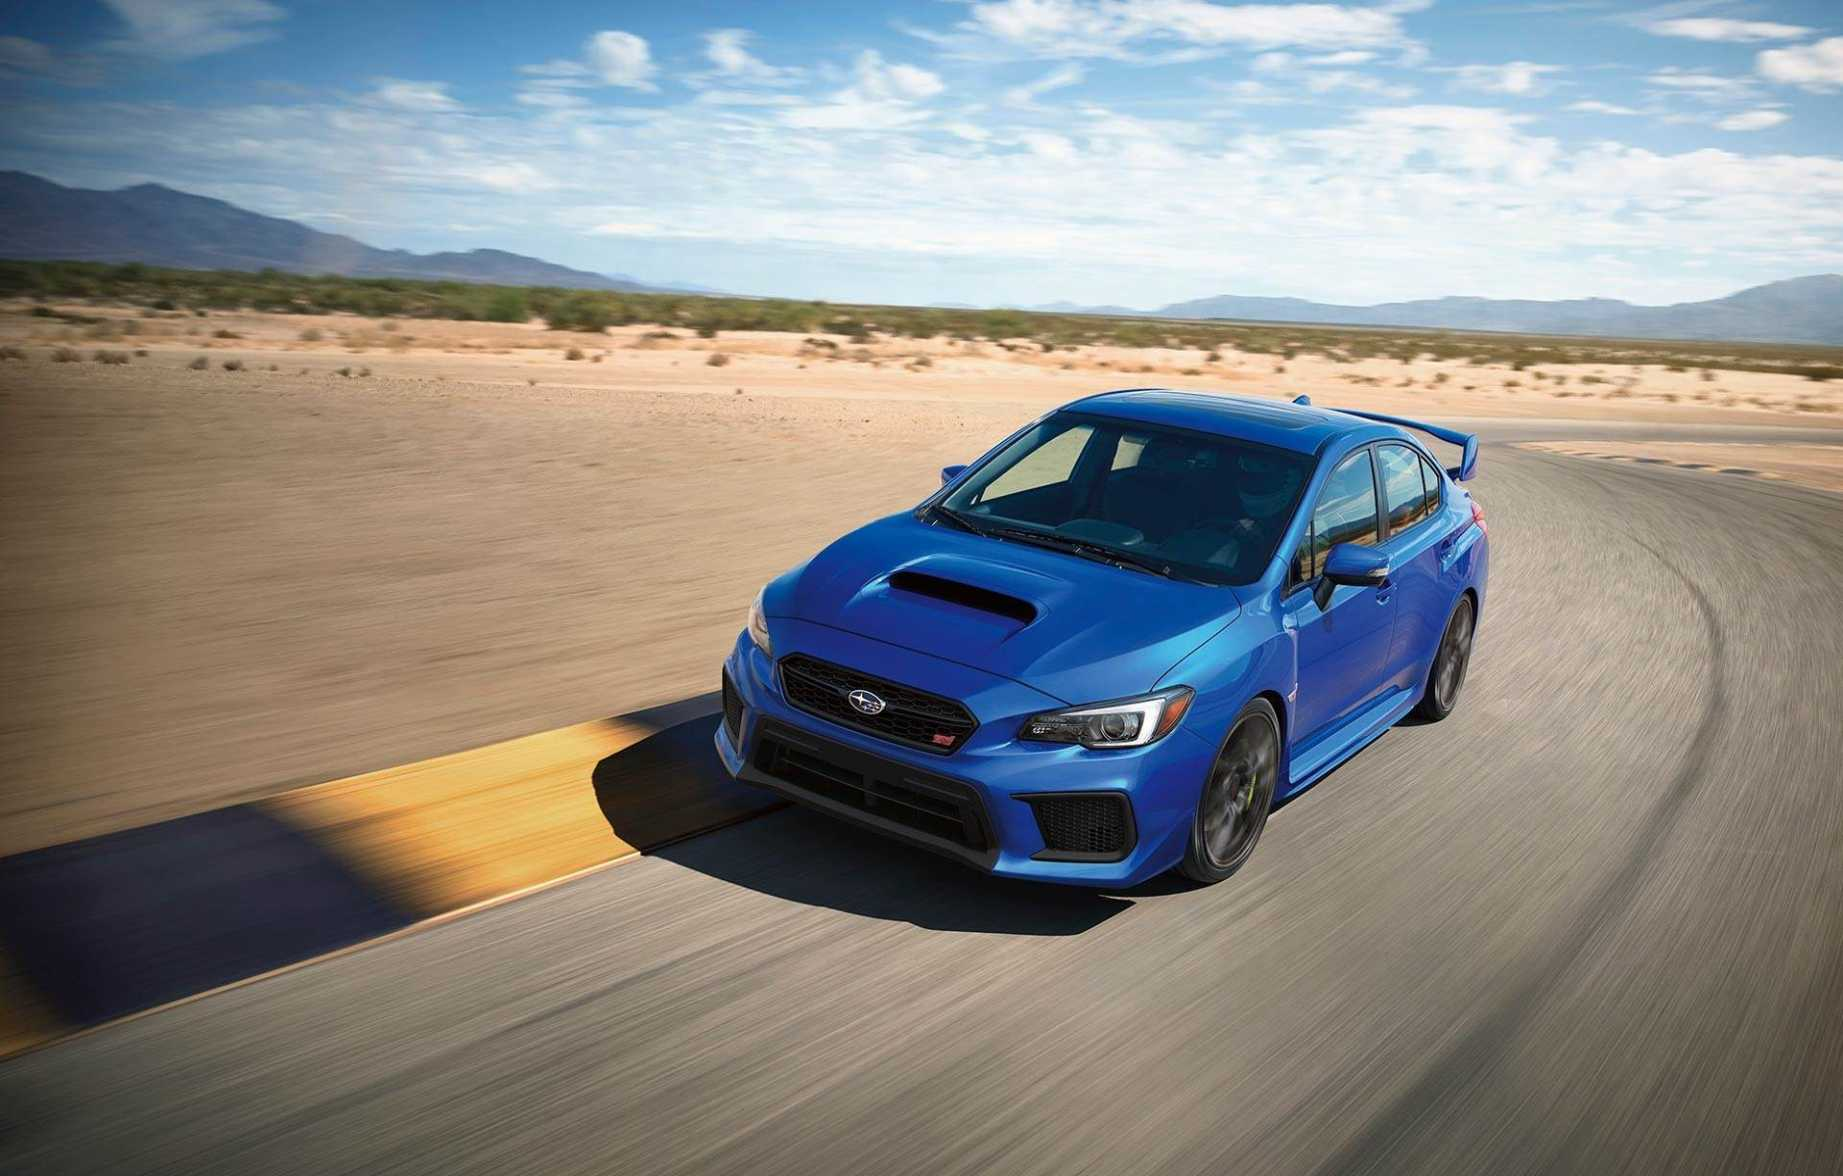 88 The Best Subaru Wrx 2019 Release Date Performance And New Engine